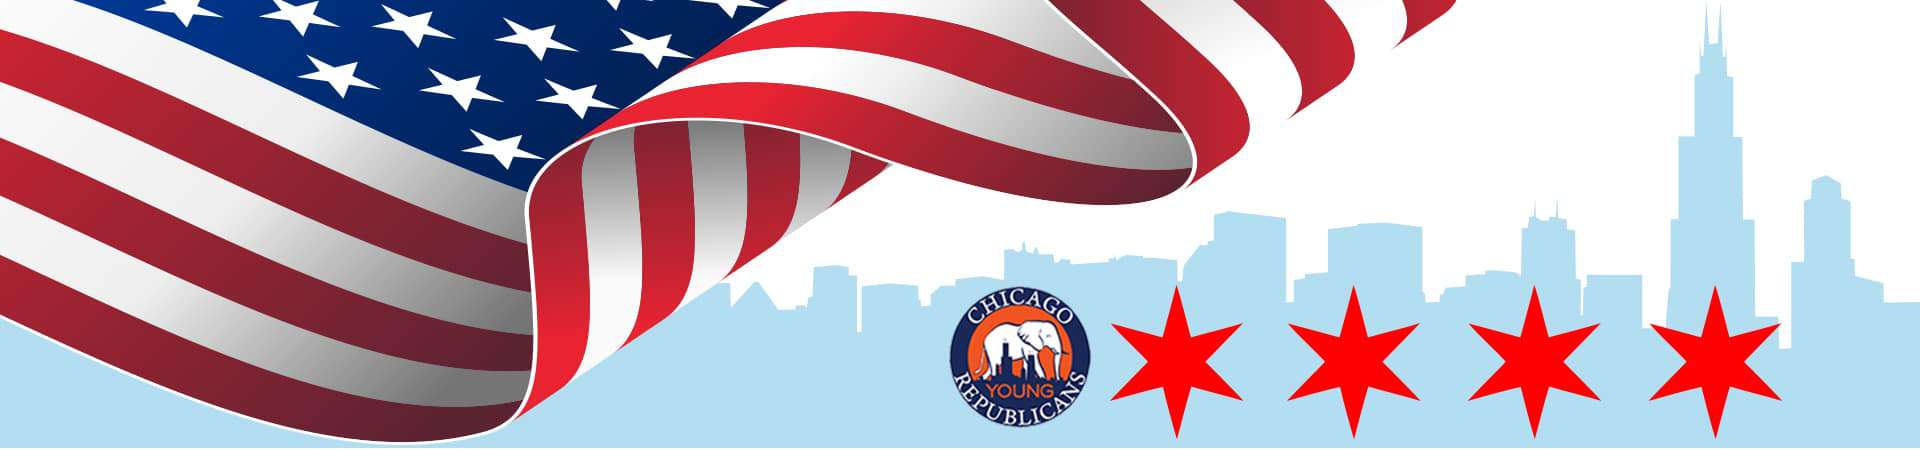 Become A Member of Chicago Young Republicans